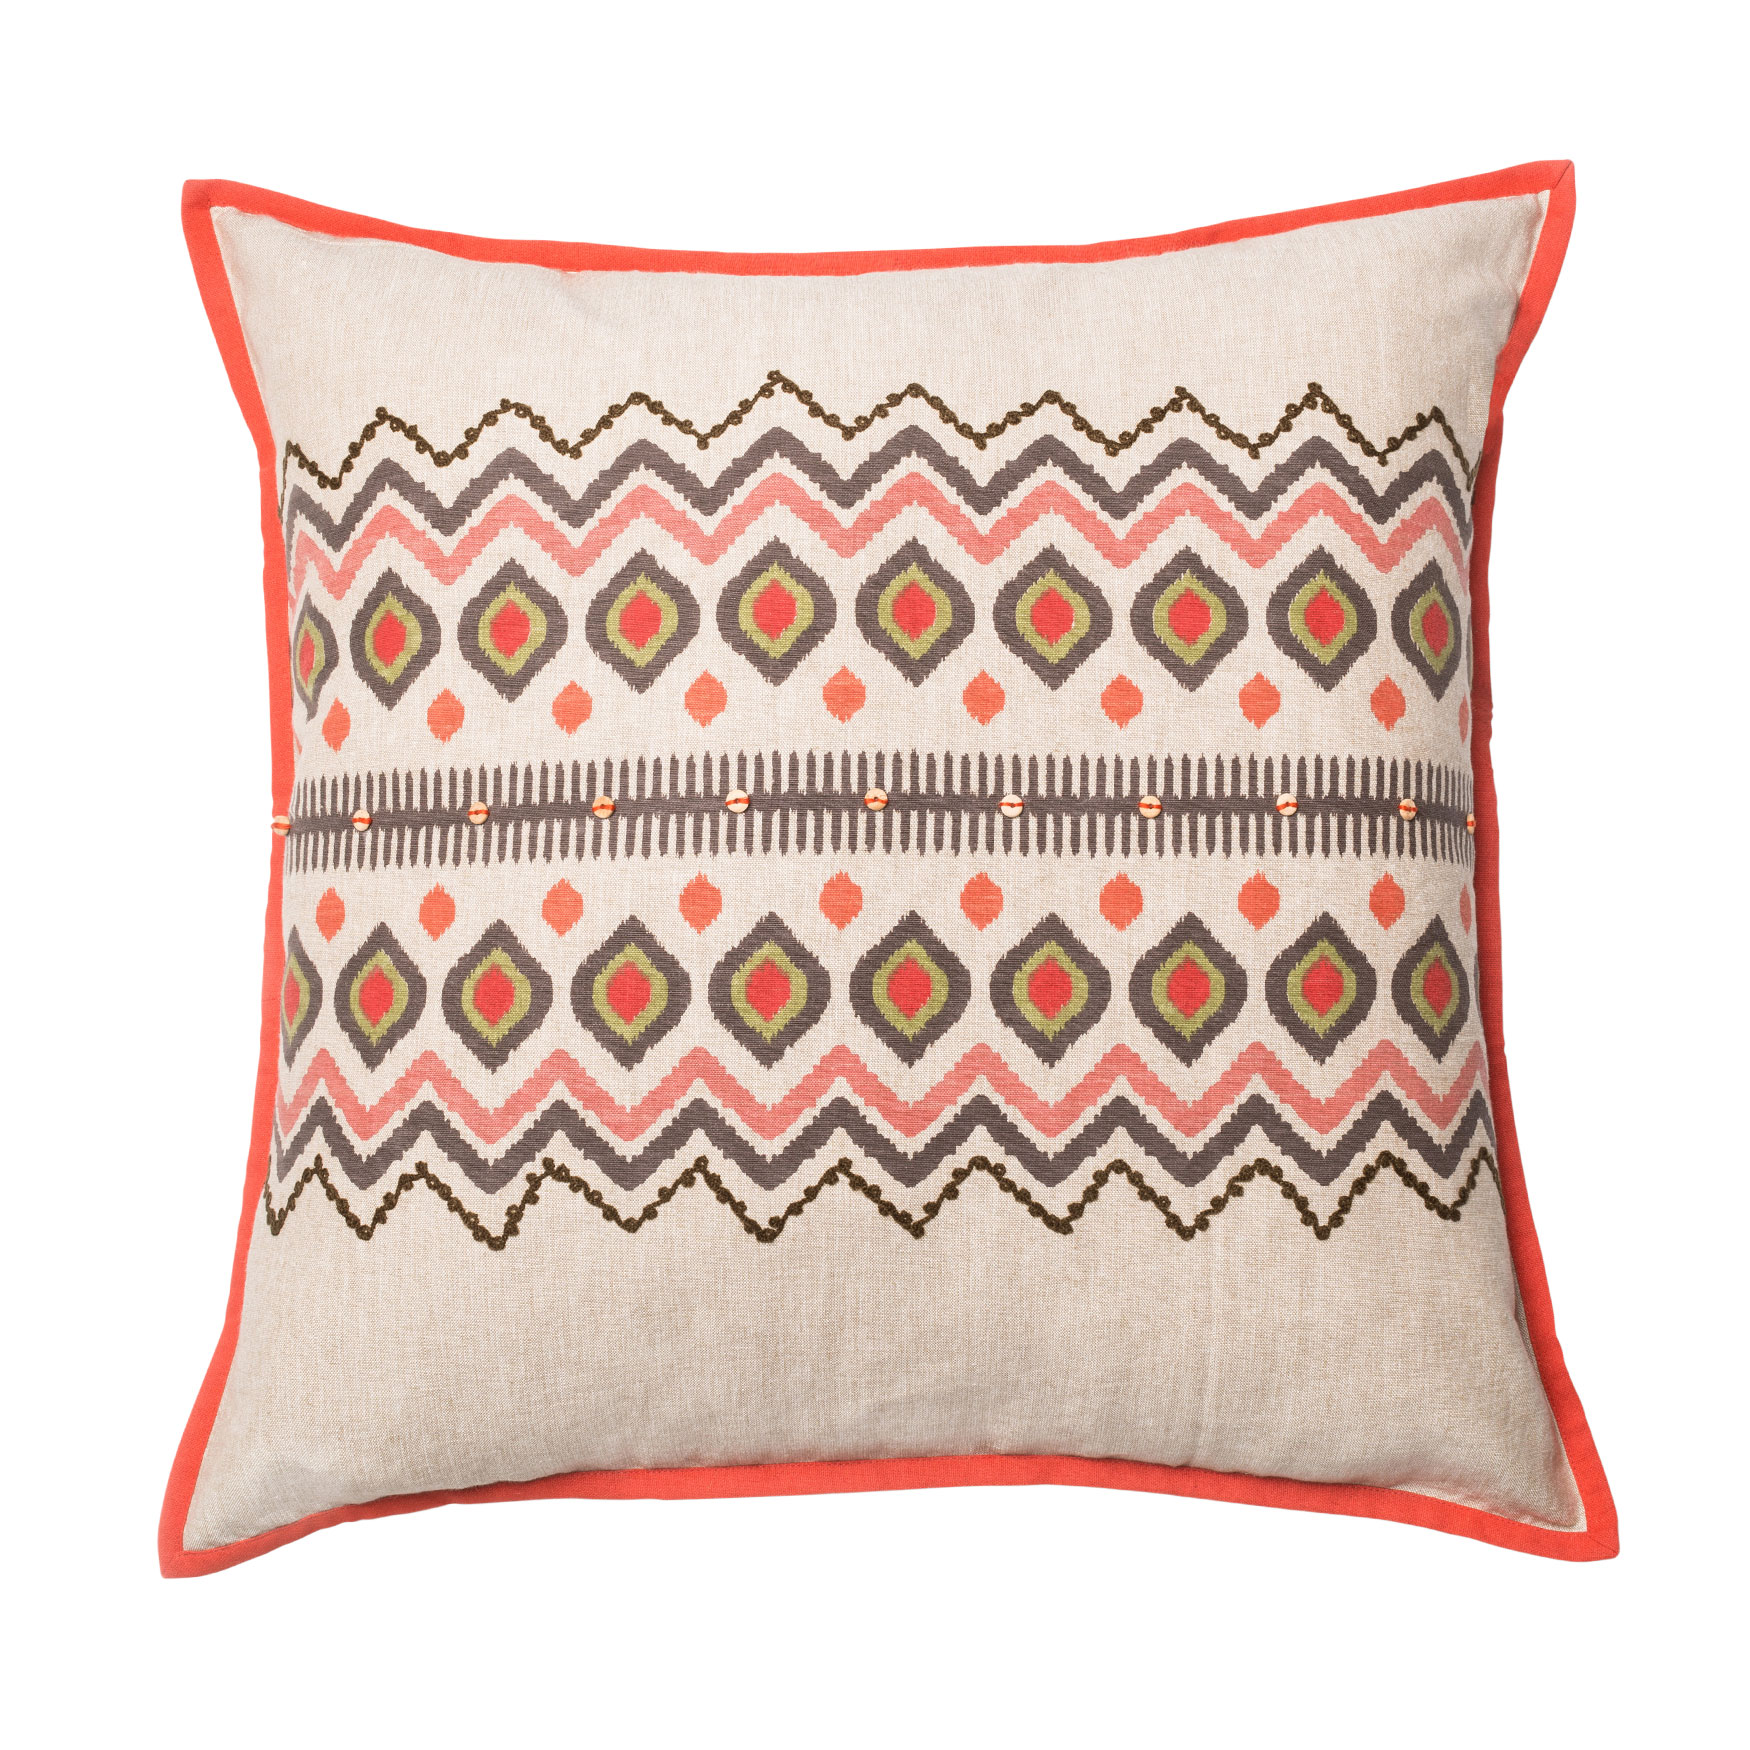 Aztec-Inspired Printed Pillow With Piping, RED NATURAL